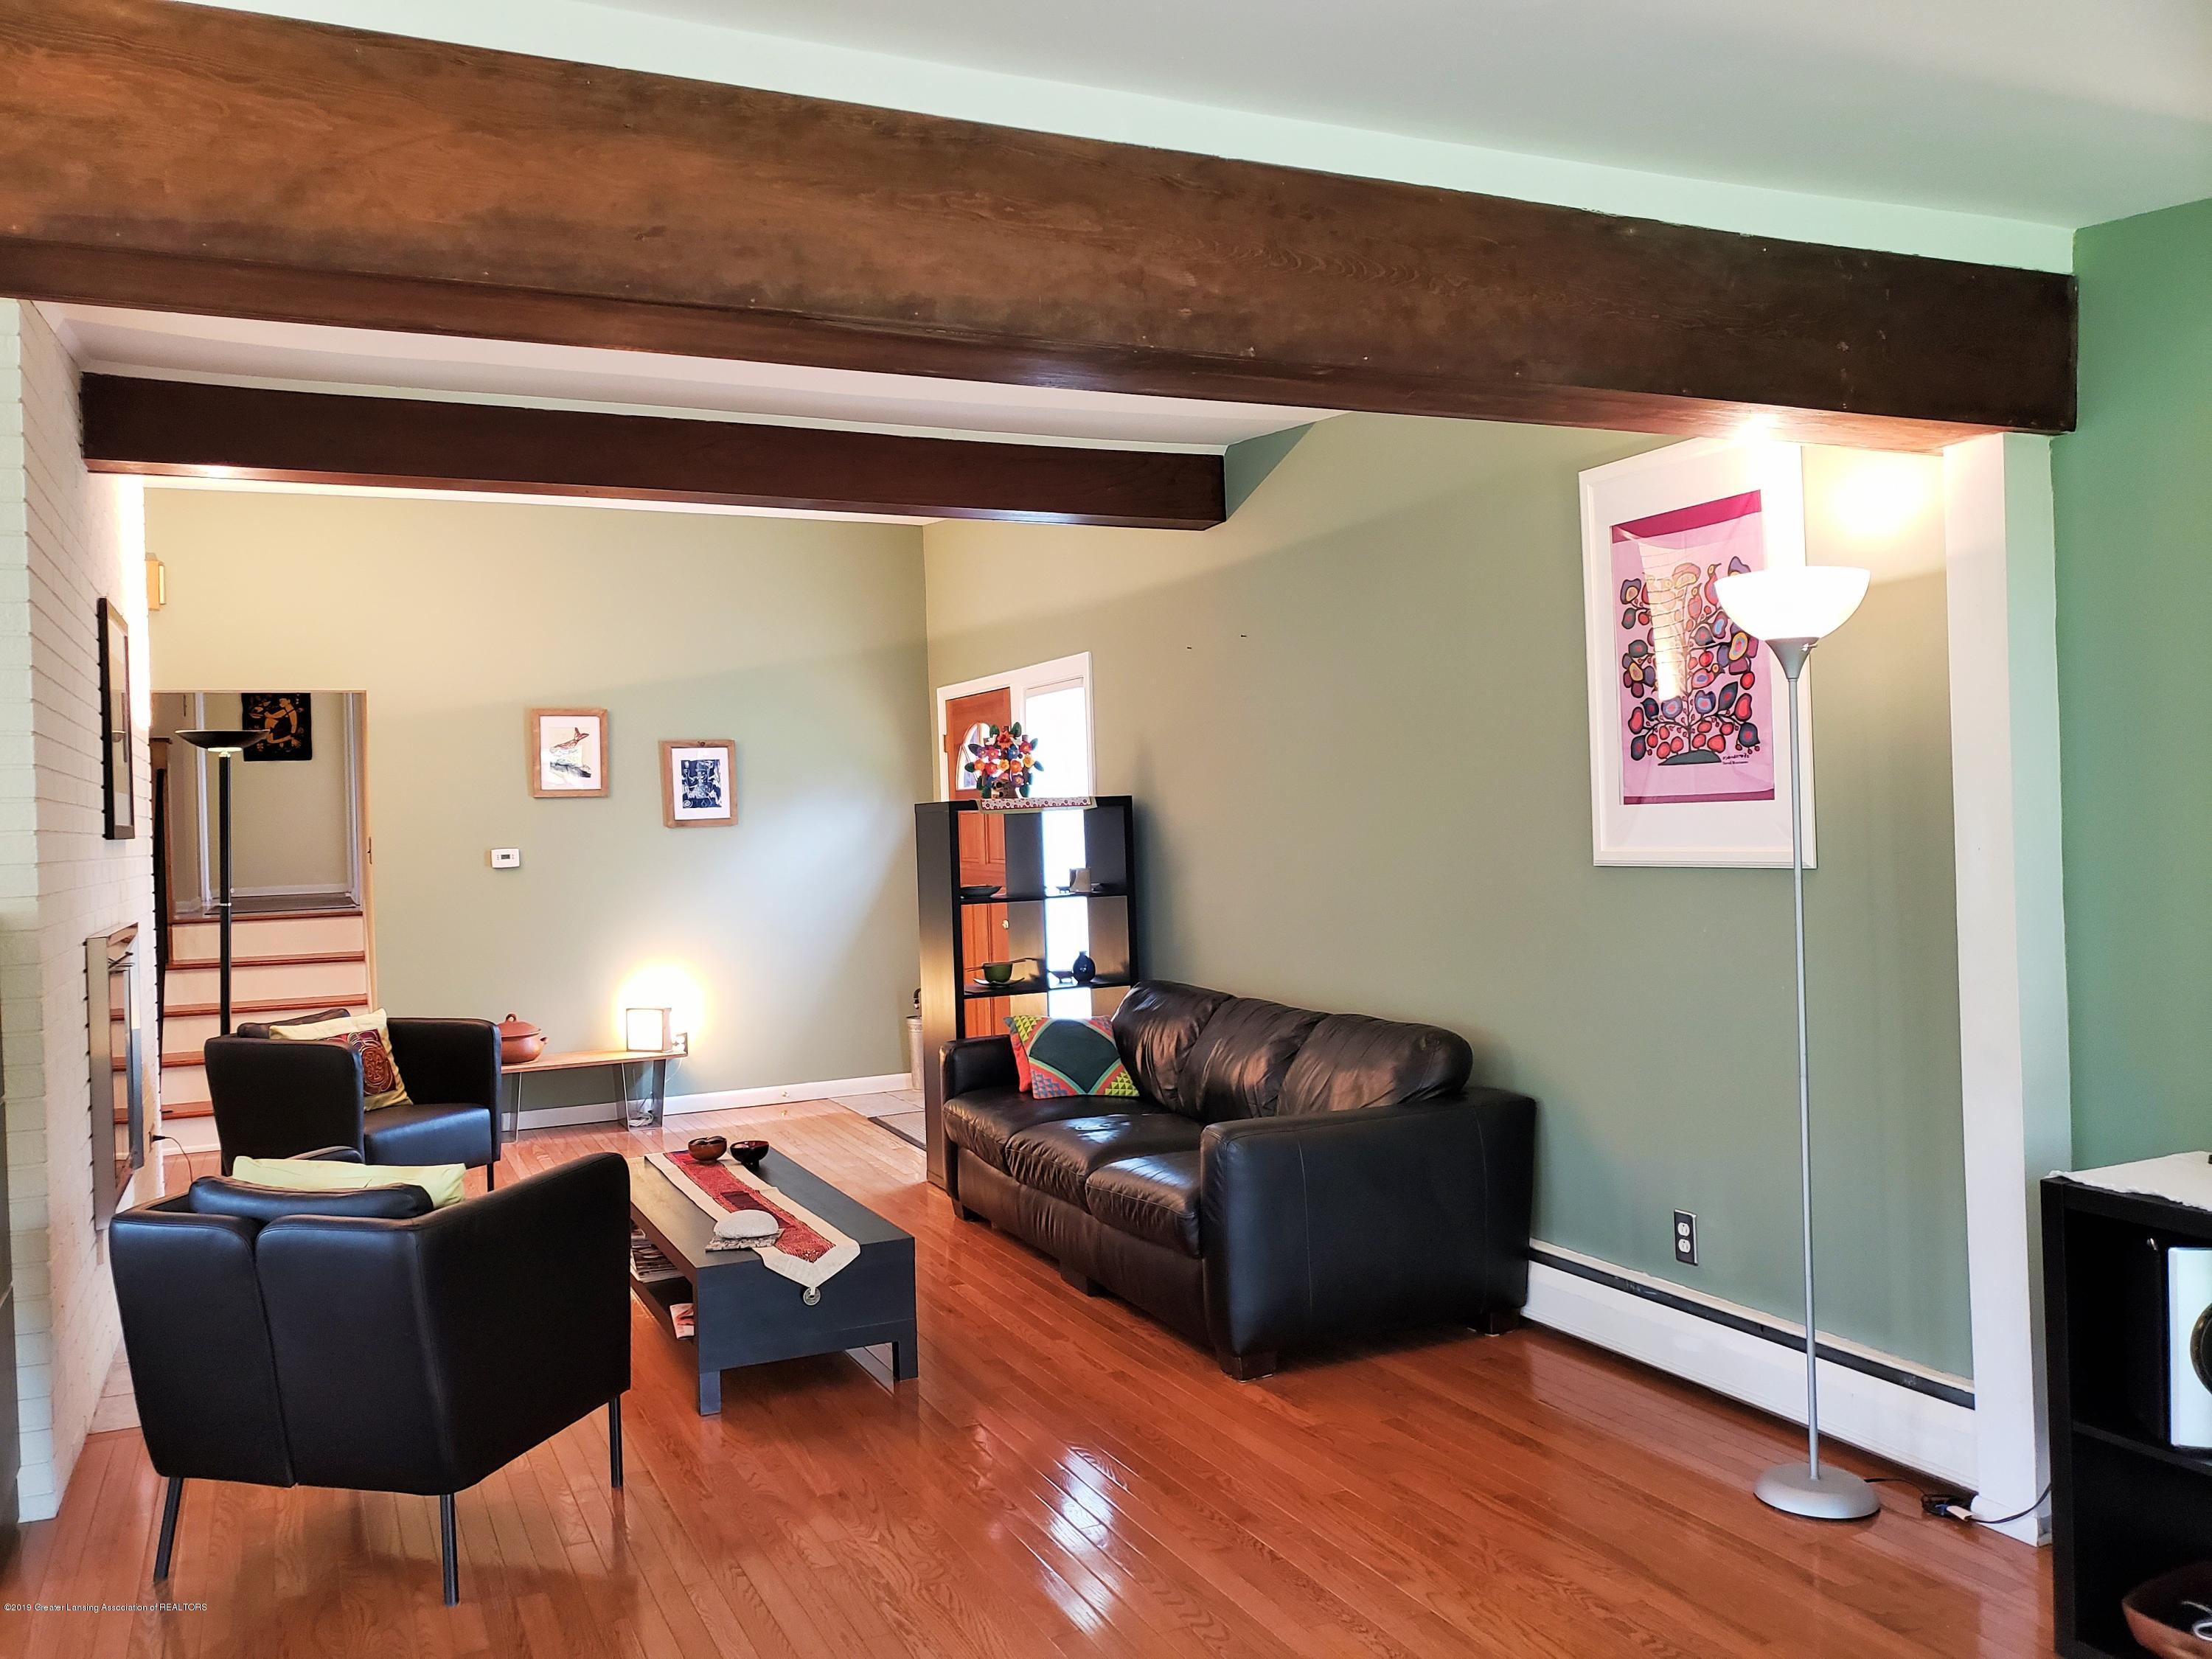 1525 Gilcrest Ave - 20190507_133632 - 5